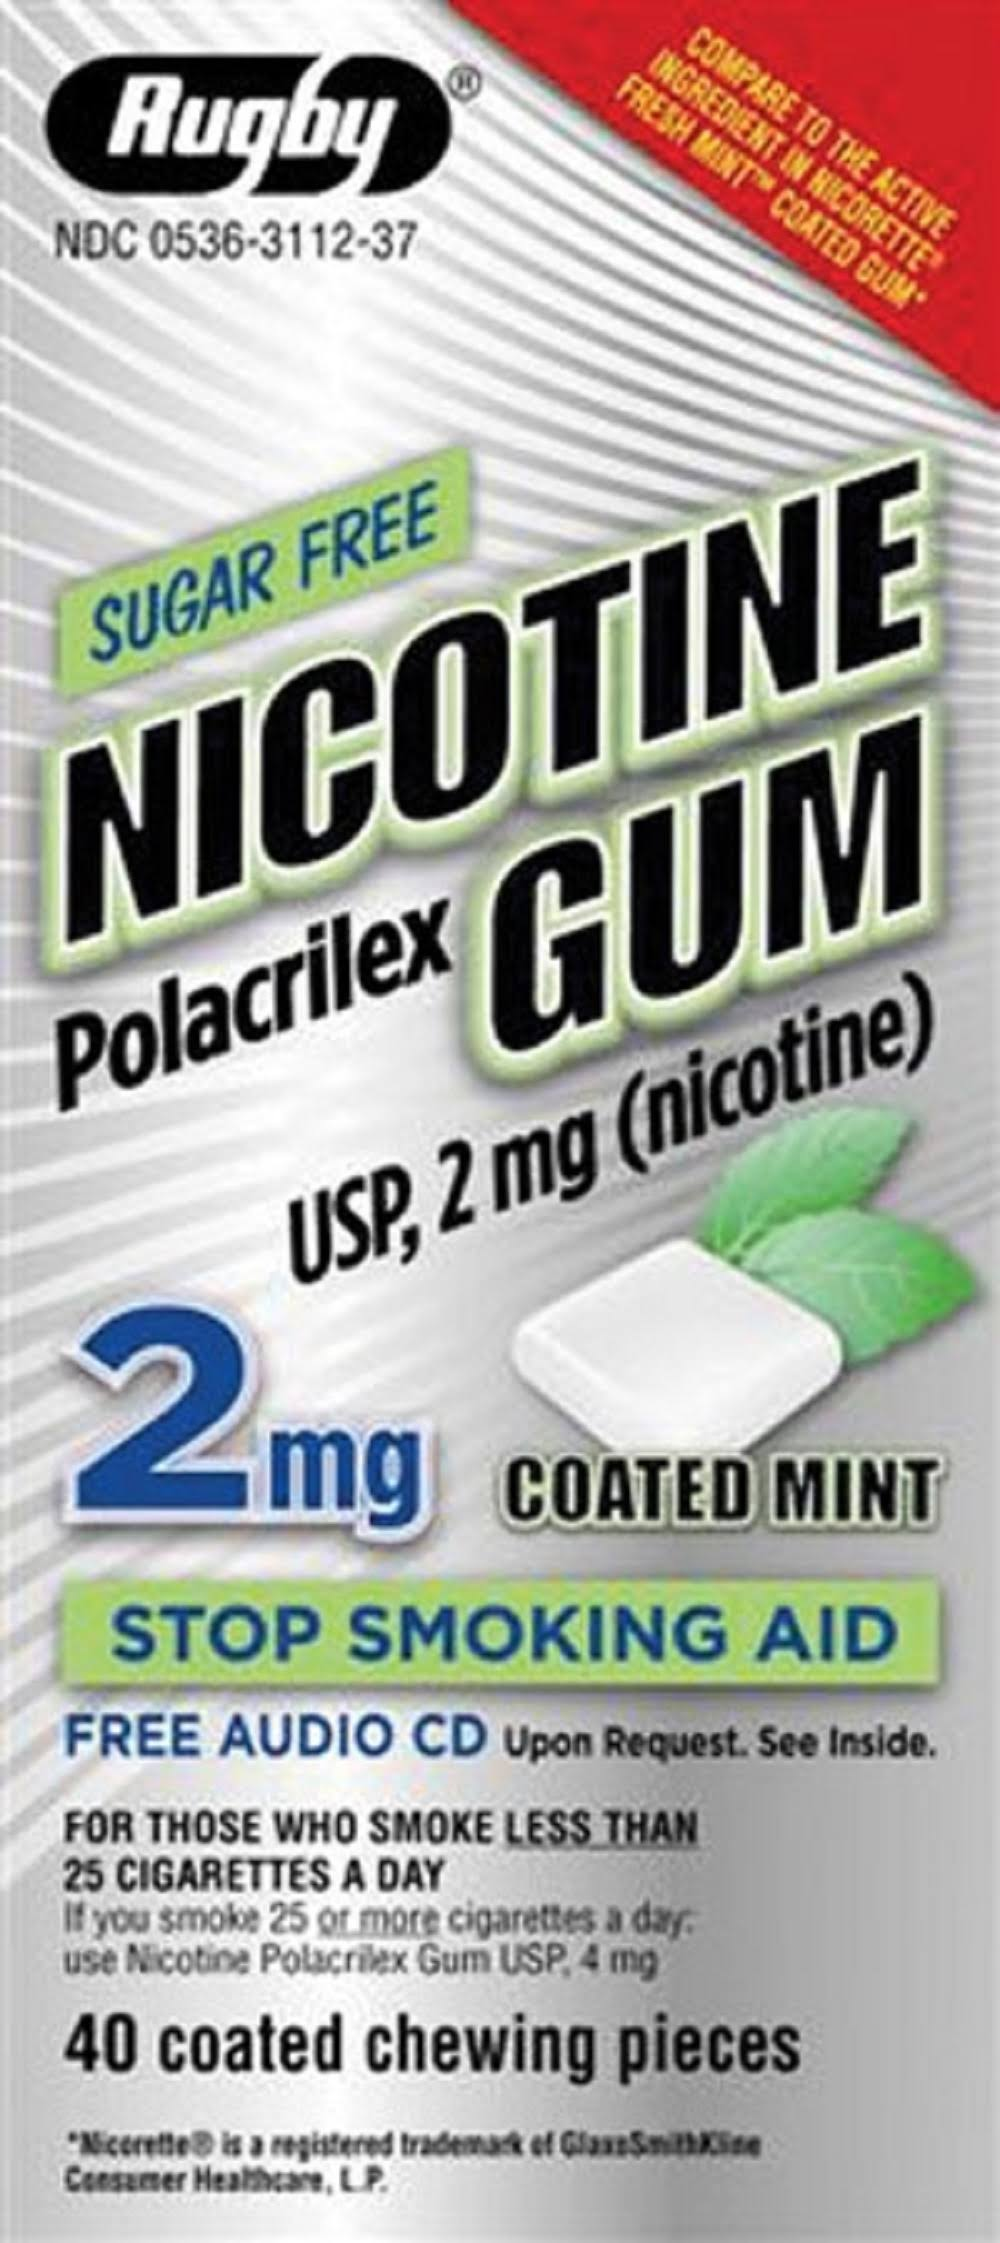 Rugby Sugar-Free Nicotine Gum 2mg Coated Mint - 40 Chewing Pieces